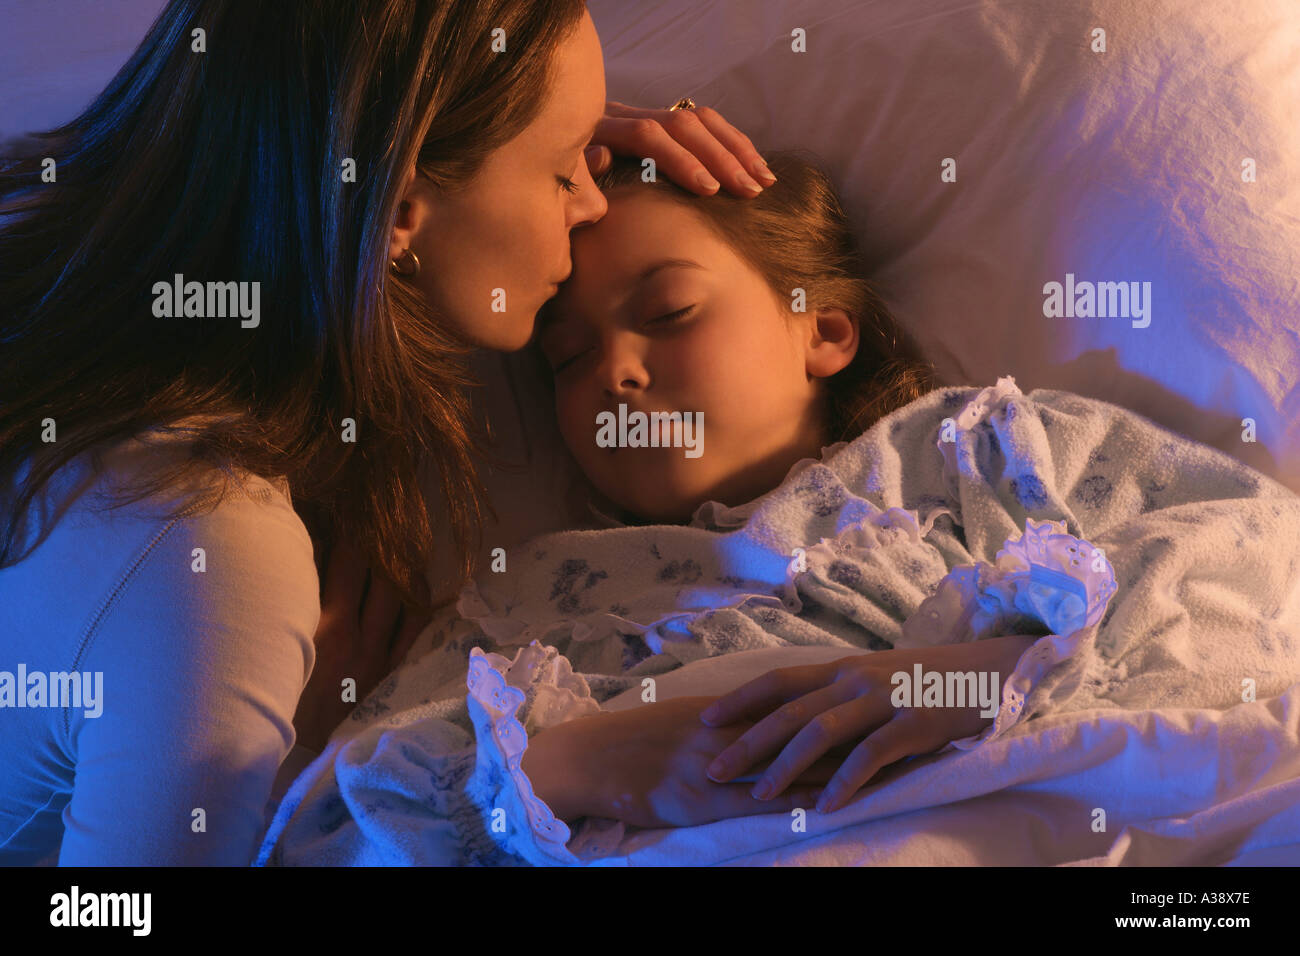 Mother with sleeping daughter - Stock Image